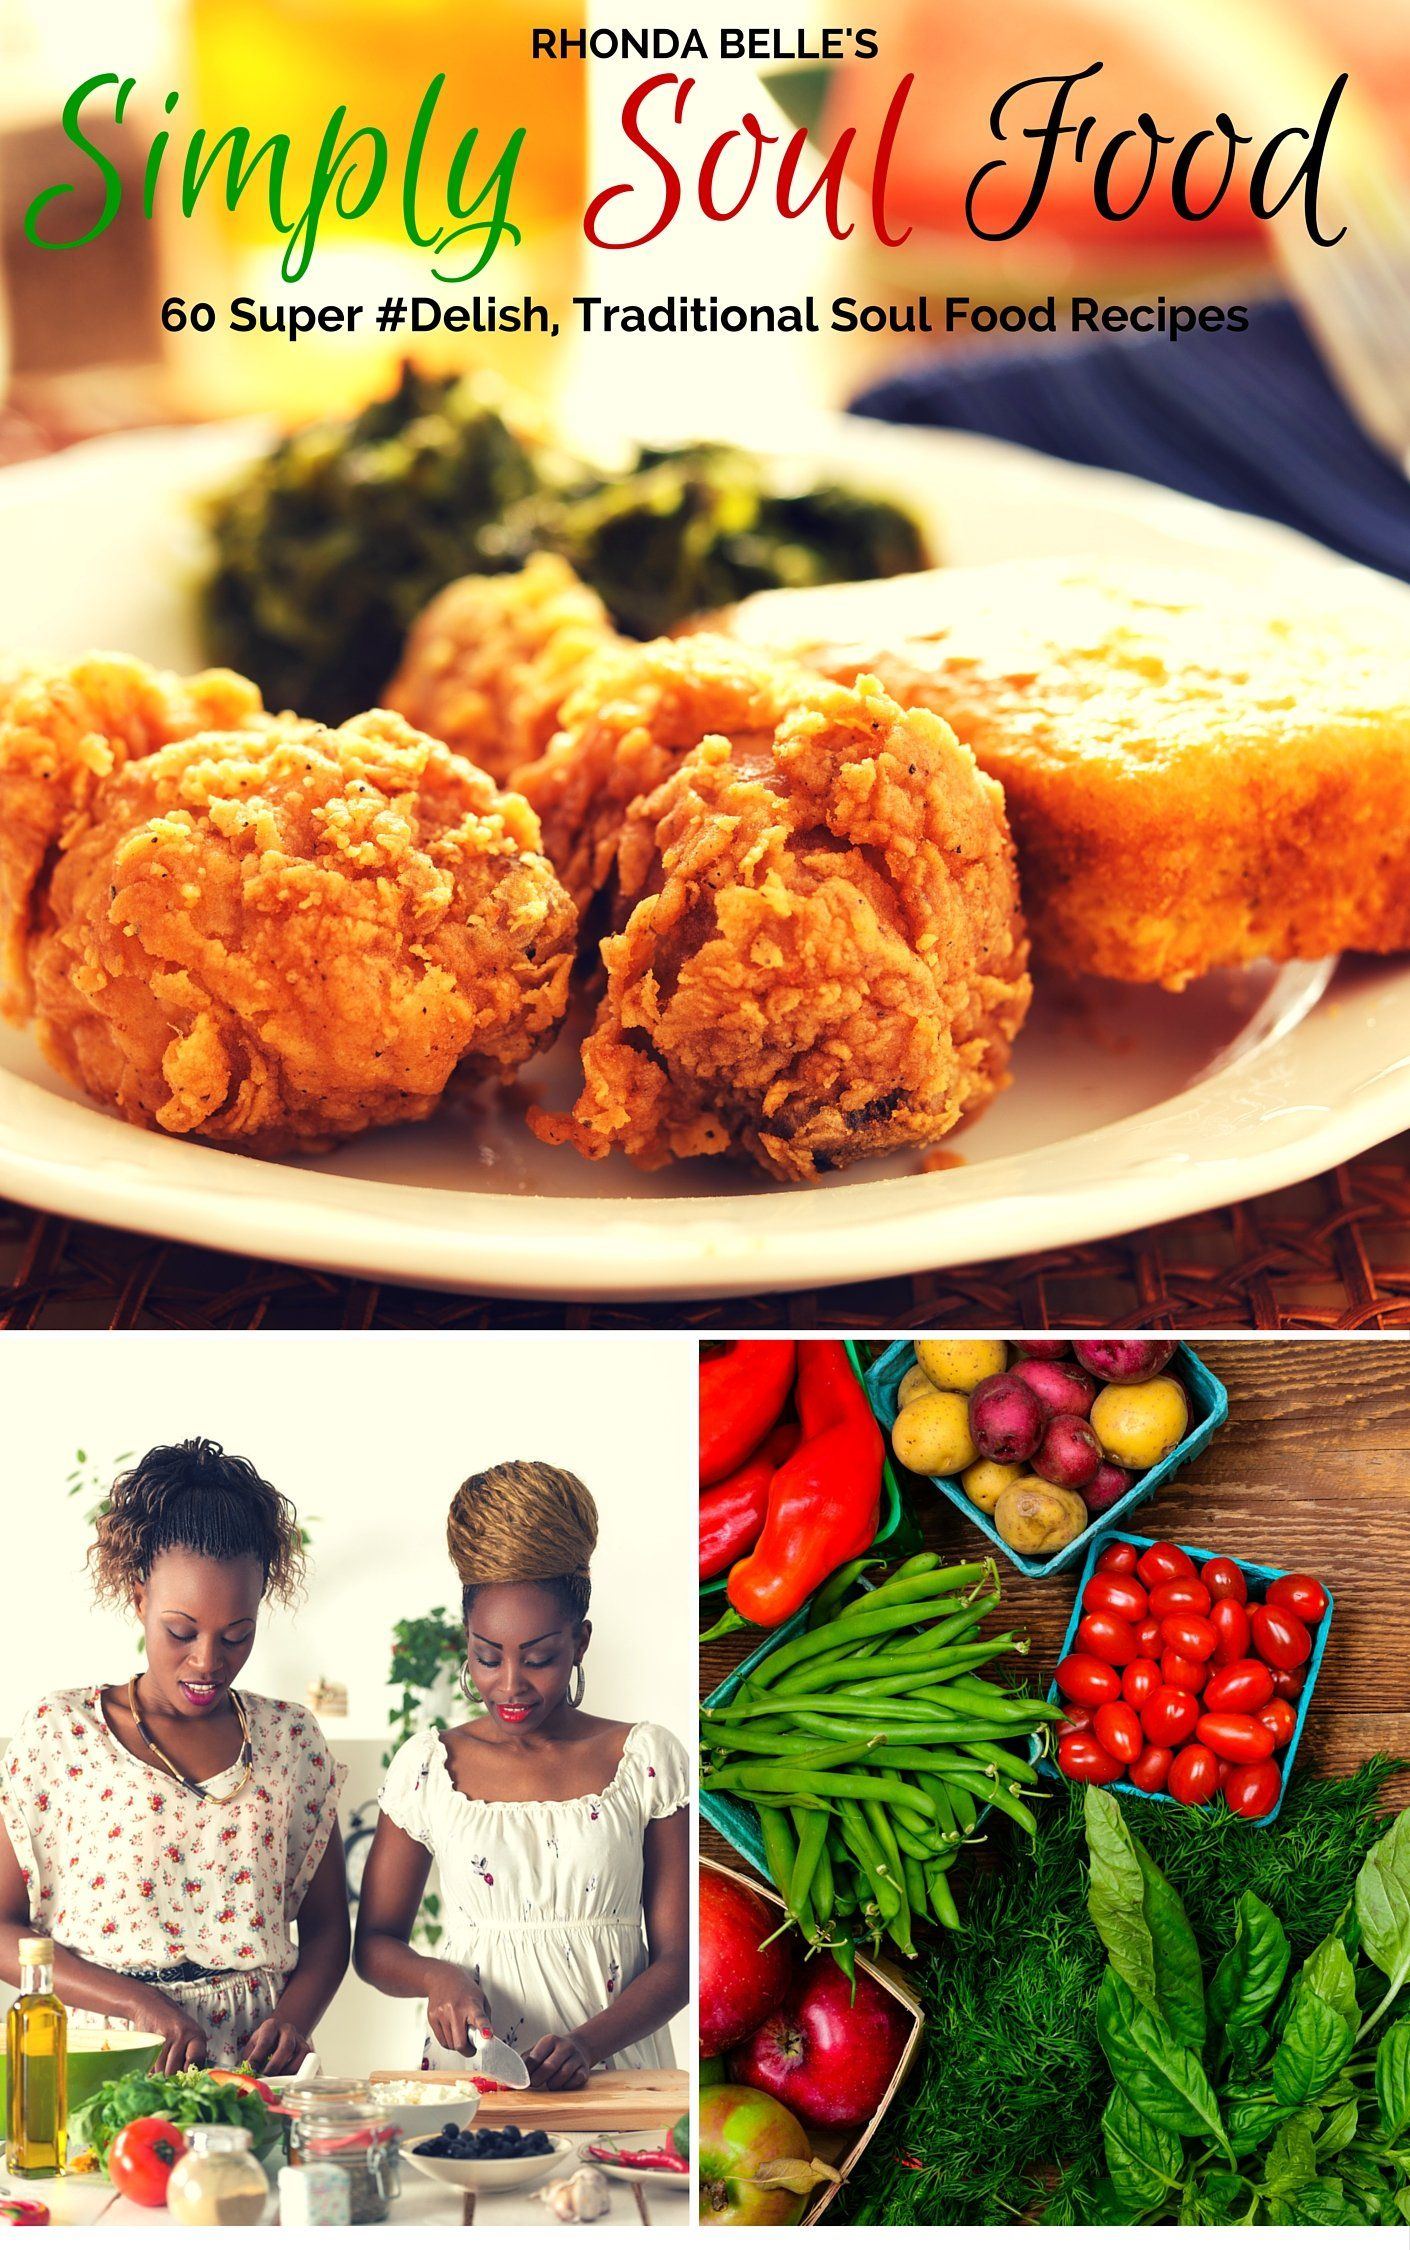 Simply soul food 60 super delish traditional soul food recipes soul food recipes and cooking detailed in a short sweet cookbook home style entrees side dishes etc recipes for diabetics too forumfinder Choice Image